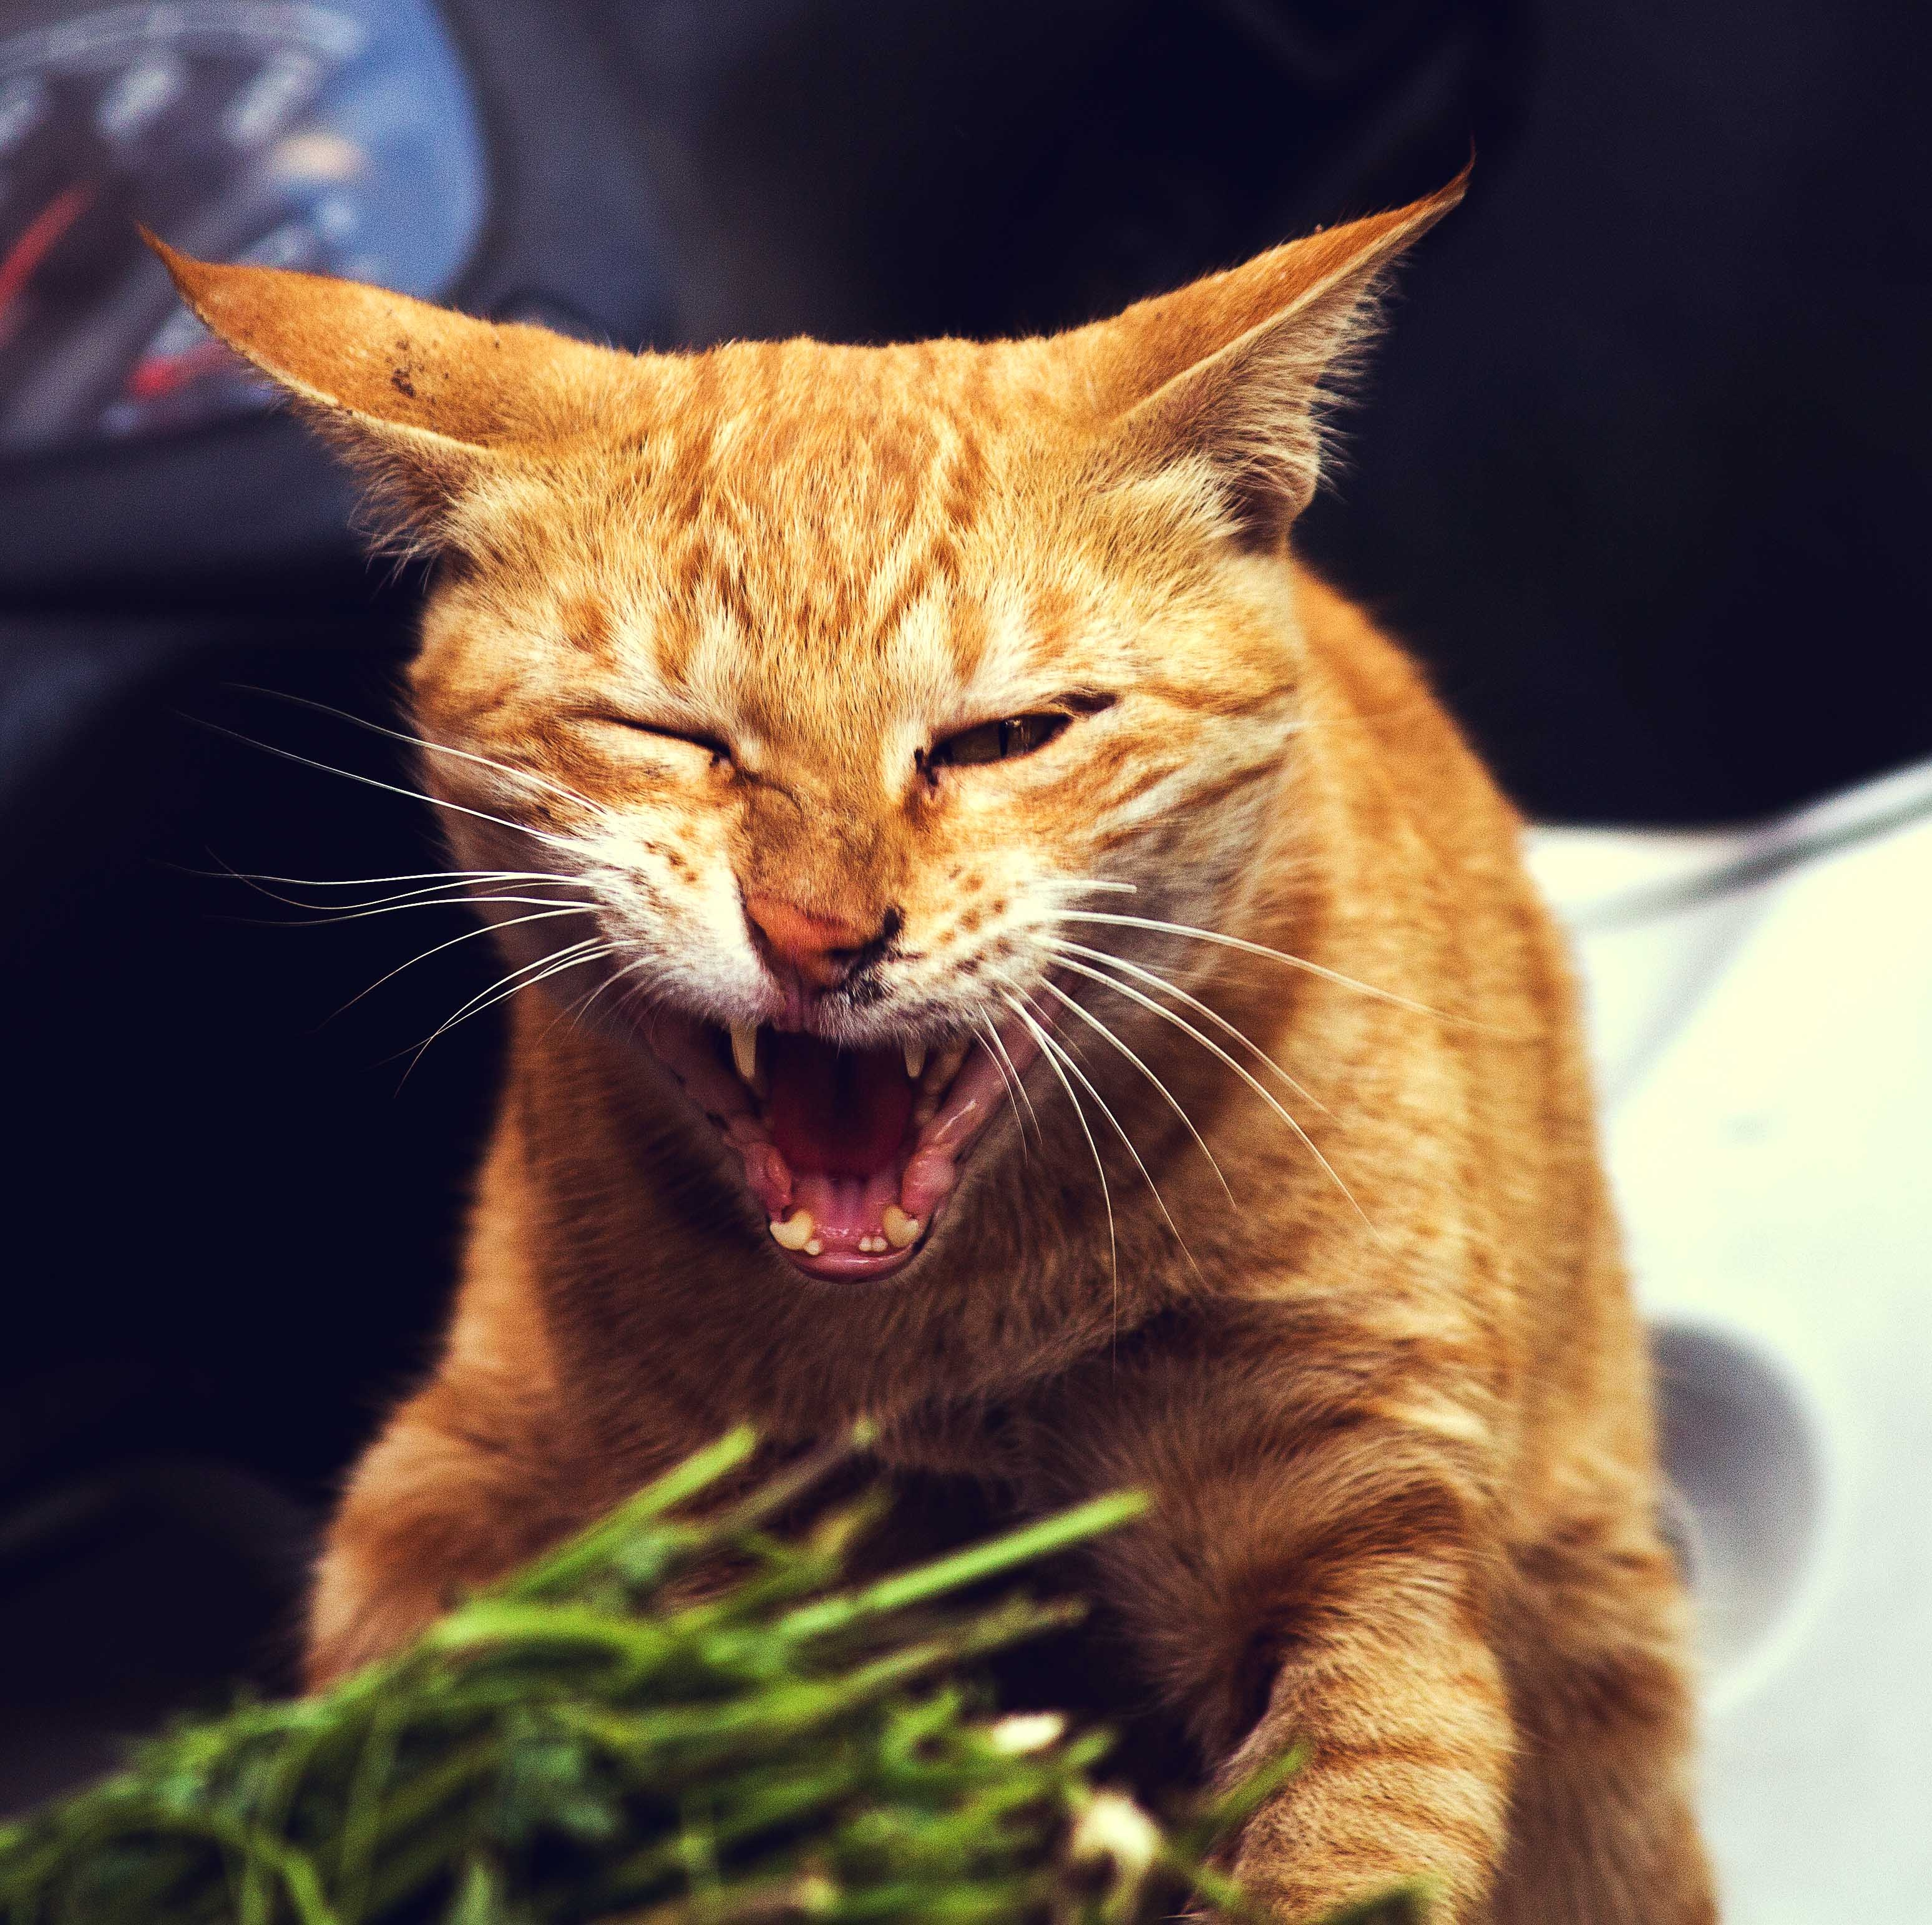 Angry Cat, Angry, Animal, Cat, Pet, HQ Photo